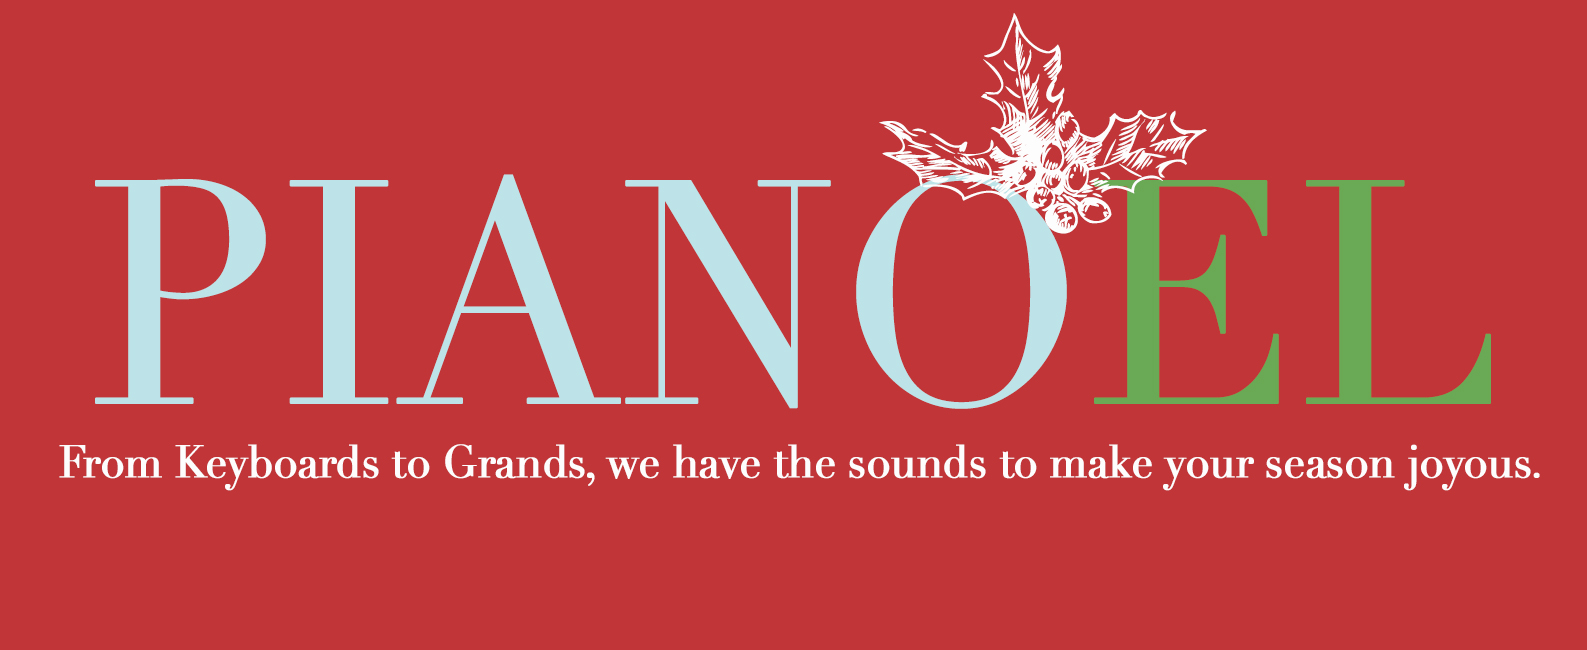 Pianos for the Holidays